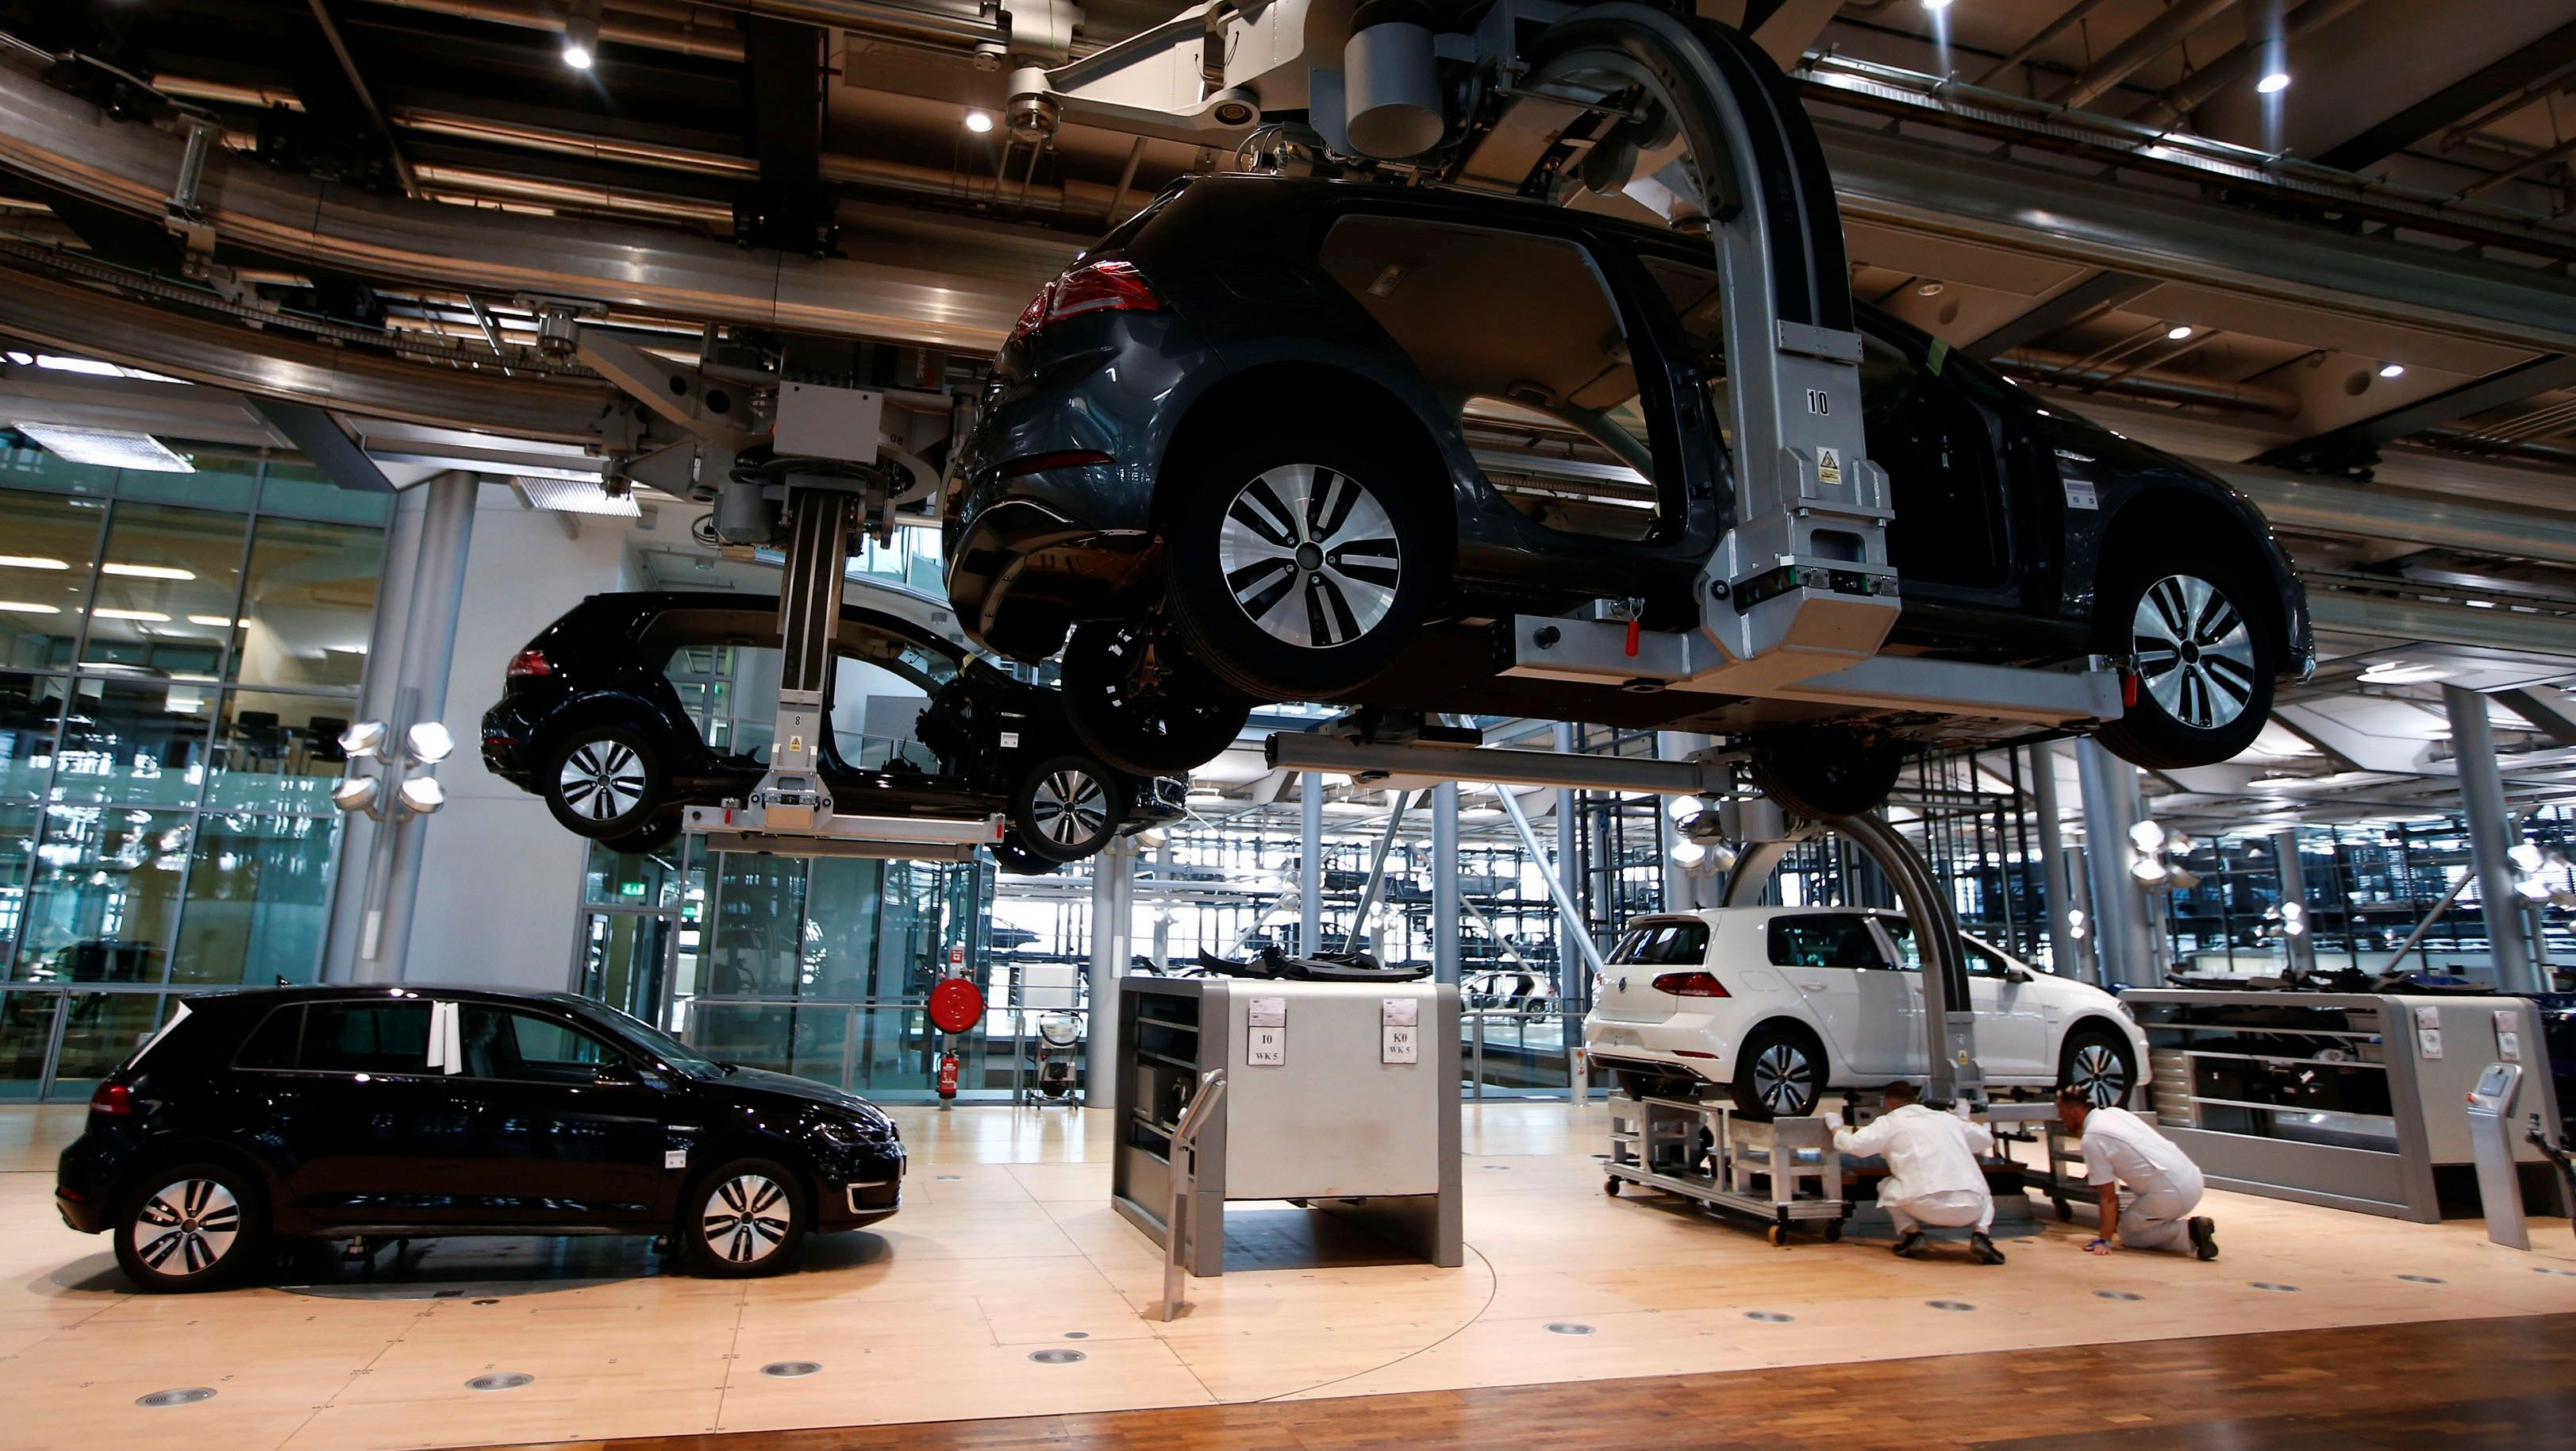 Workers assemble an e-Golf electric car at the new production line of the Transparent Factory of German carmaker Volkswagen in Dresden, Germany March 30, 2017. REUTERS/Fabrizio Bensch - RC1FB591EC90